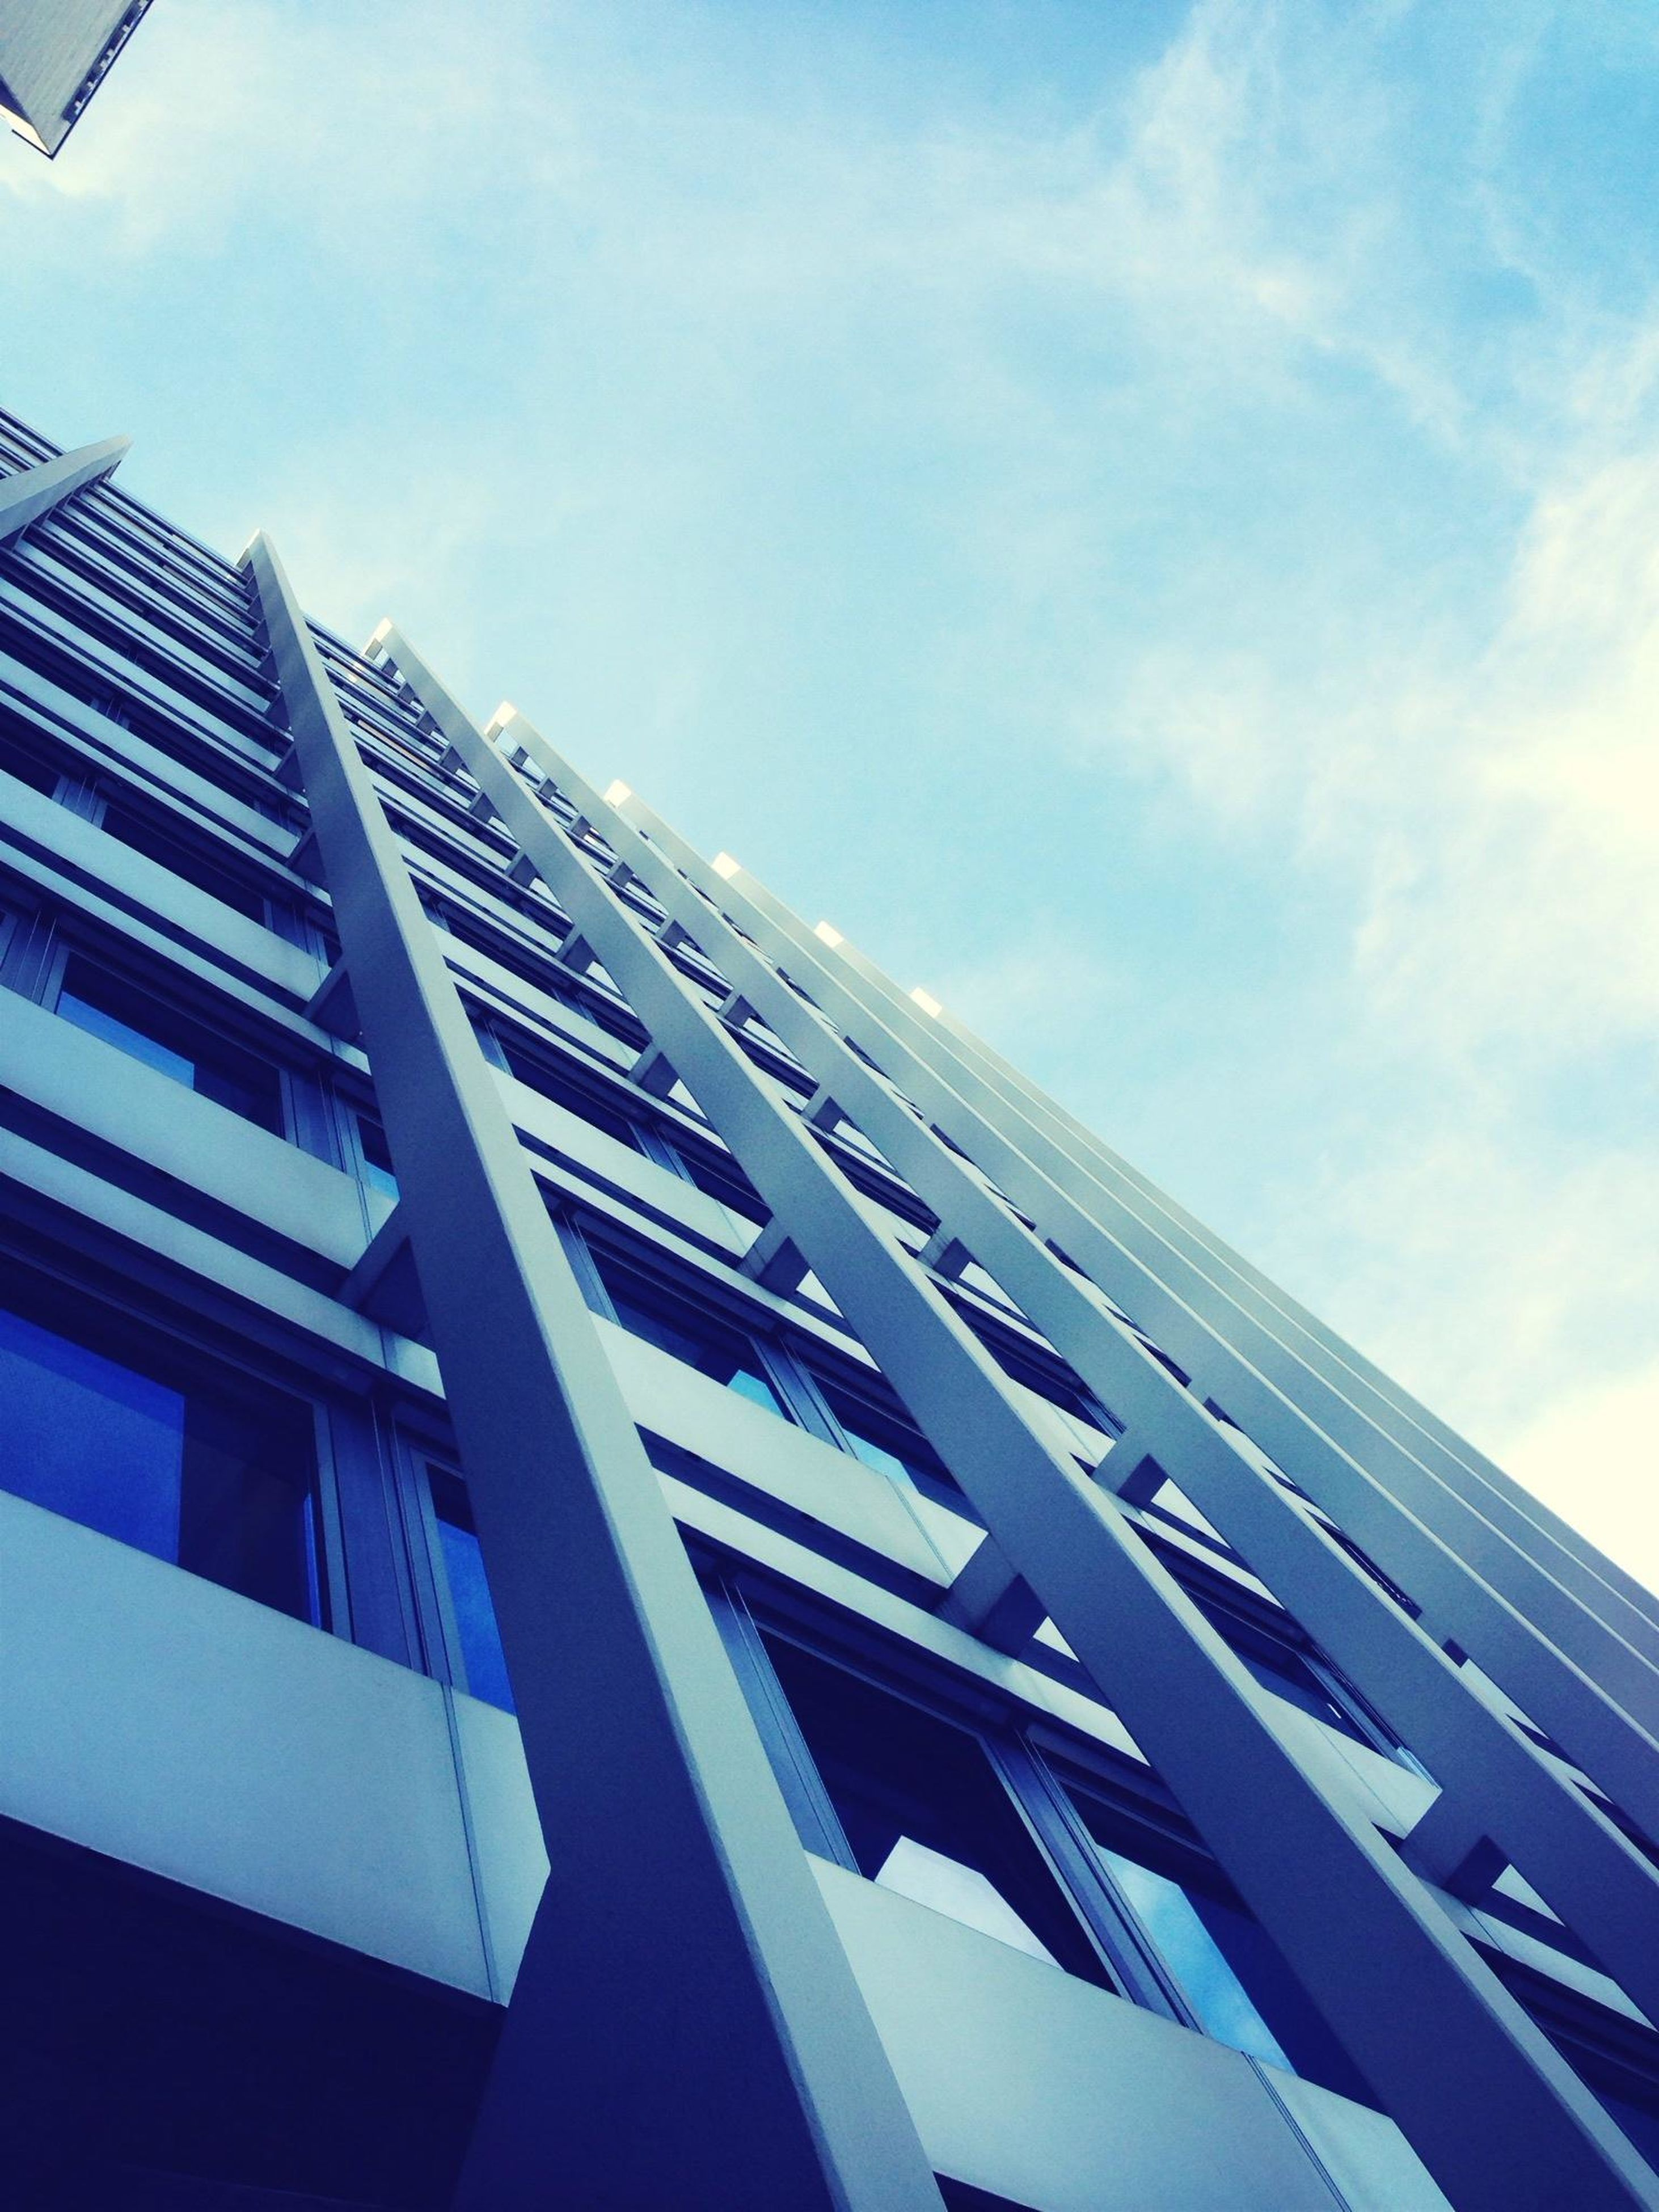 architecture, building exterior, low angle view, built structure, modern, office building, city, building, sky, skyscraper, tall - high, glass - material, window, tower, day, reflection, outdoors, no people, blue, residential building